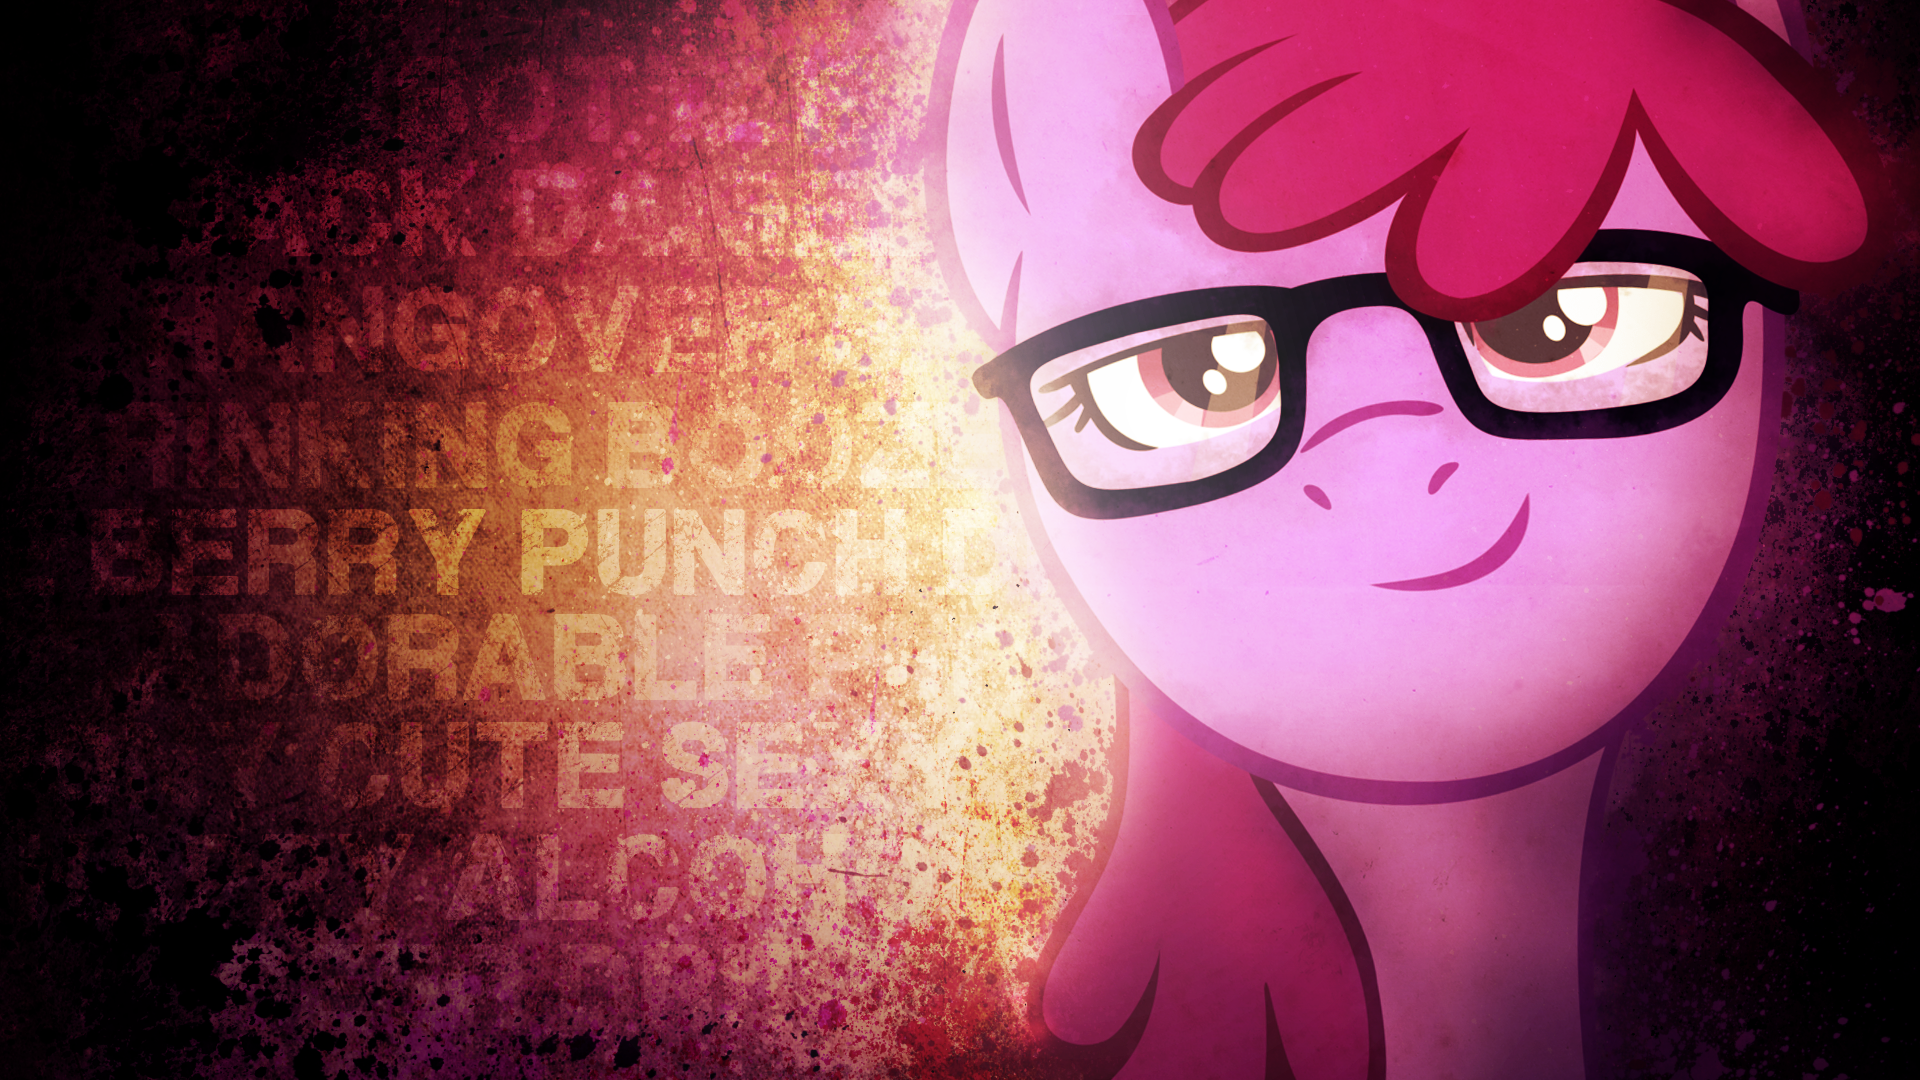 Hipster Berry Punch by DraikJack and SandwichDelta